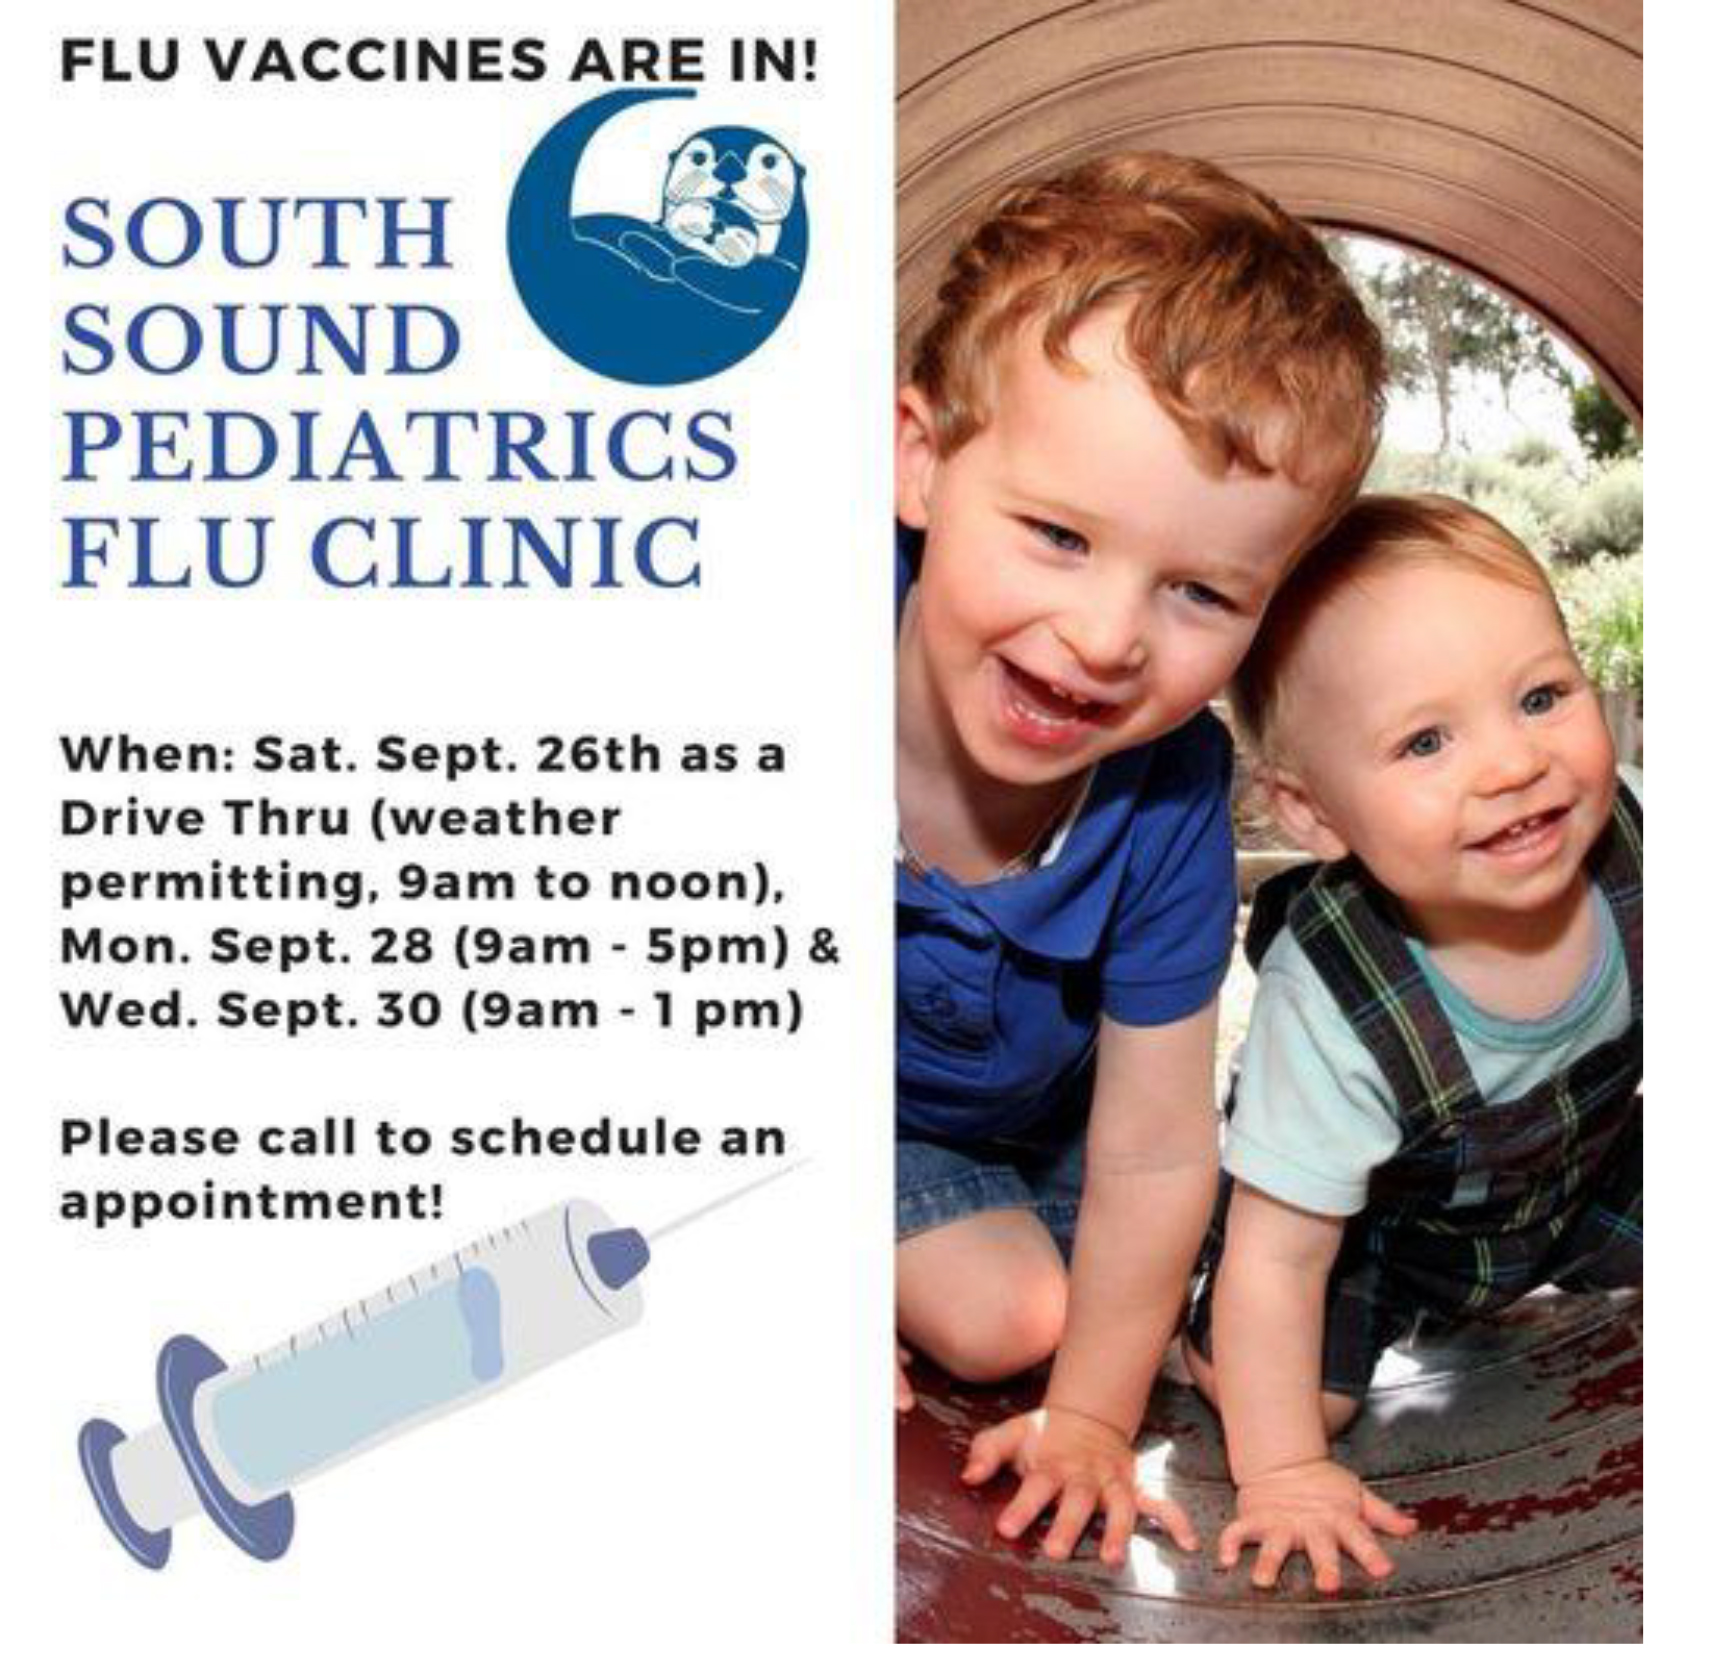 //southsoundpeds.com/wp-content/uploads/2020/09/flu-clinic-flyer.jpg